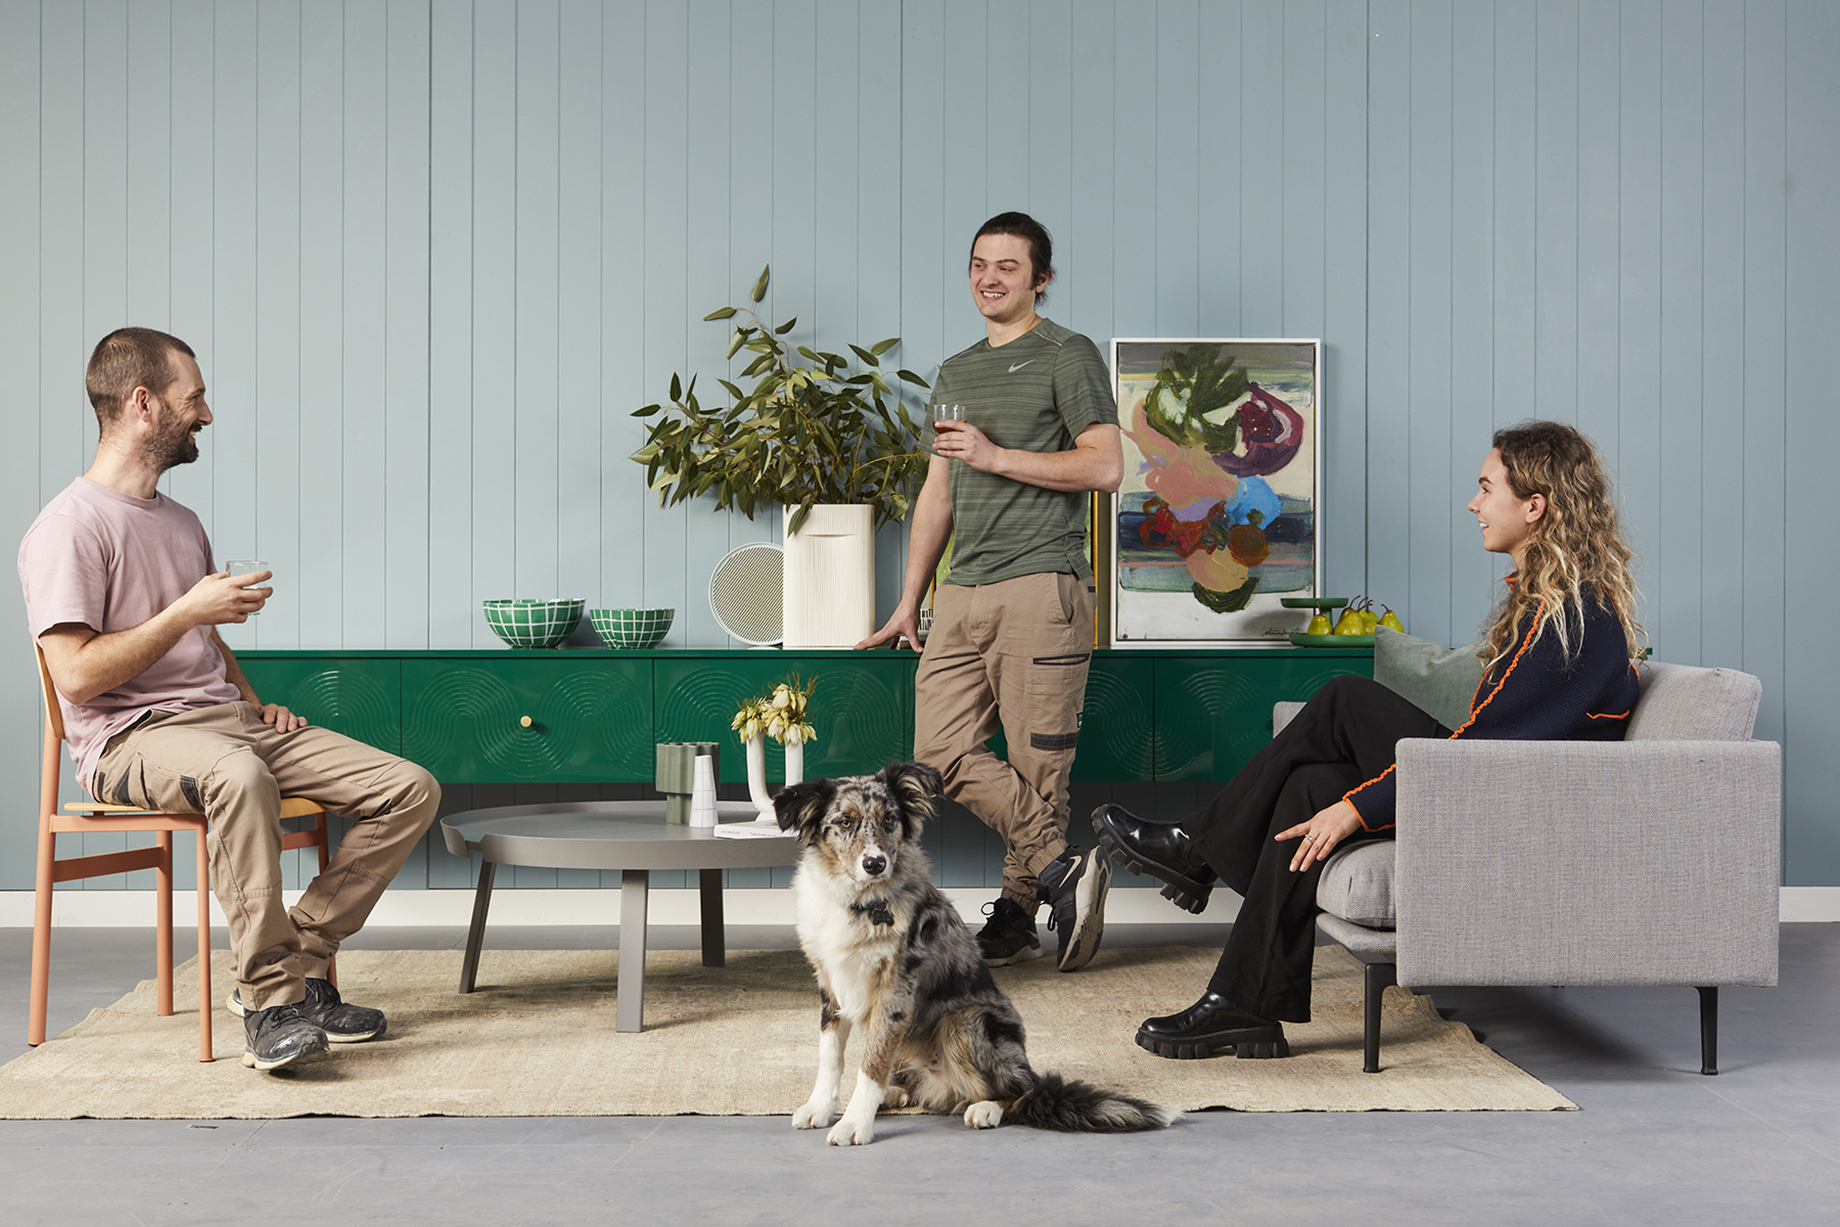 The Ensemble design team posing as subjects with an Australian Shepard in front shot by Peter Tarasiuk